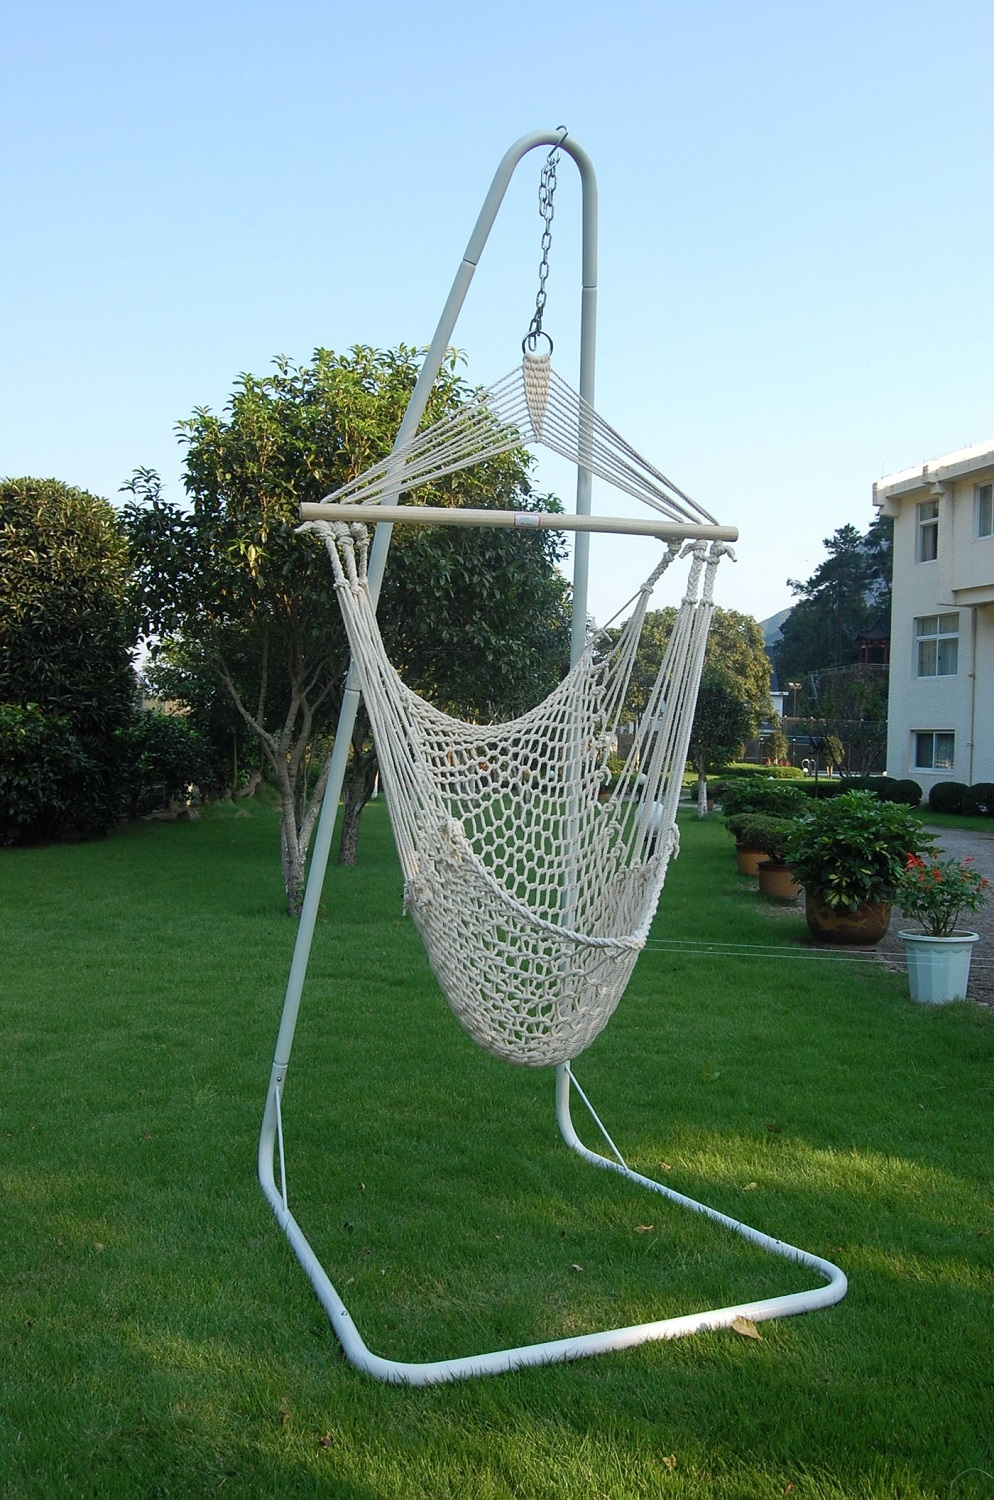 Hanging Chair Outdoor Maribelle Hammock Chair Swing